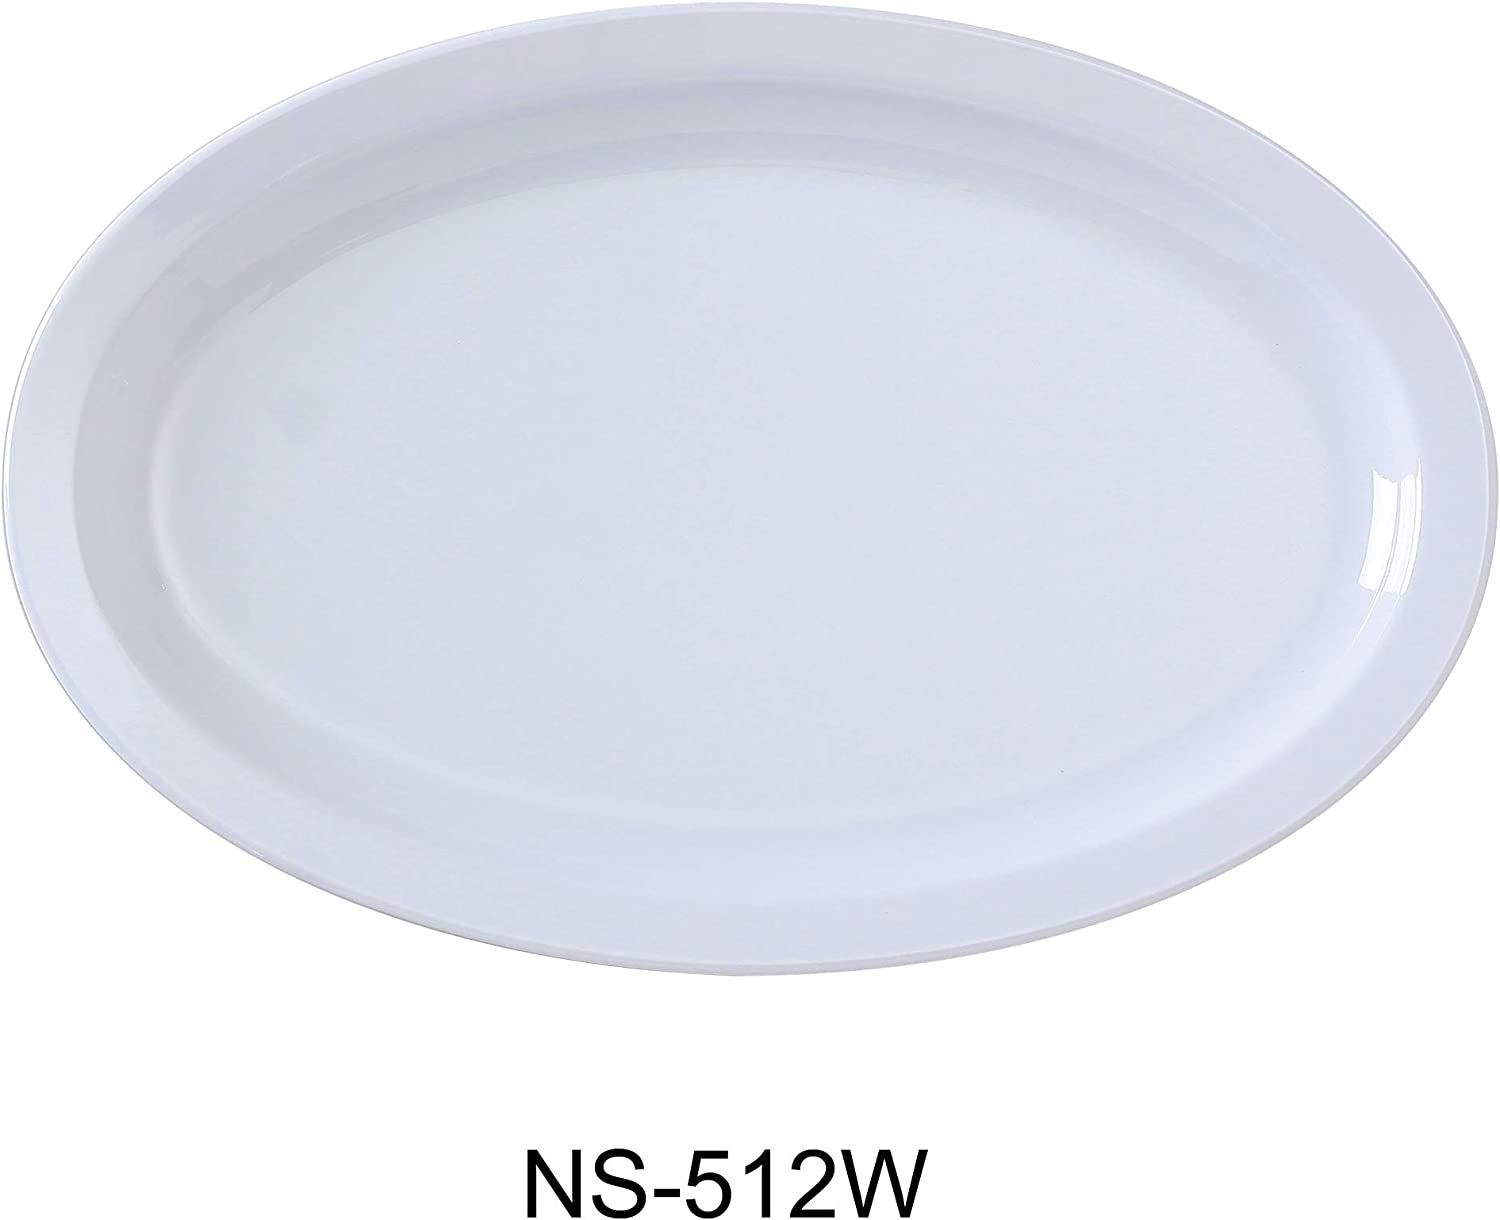 Yanco NS-512W Nessico Oval Platter with Narrow Rim, 8  Width, 11.5  Length, Melamine, White color, Pack of 24